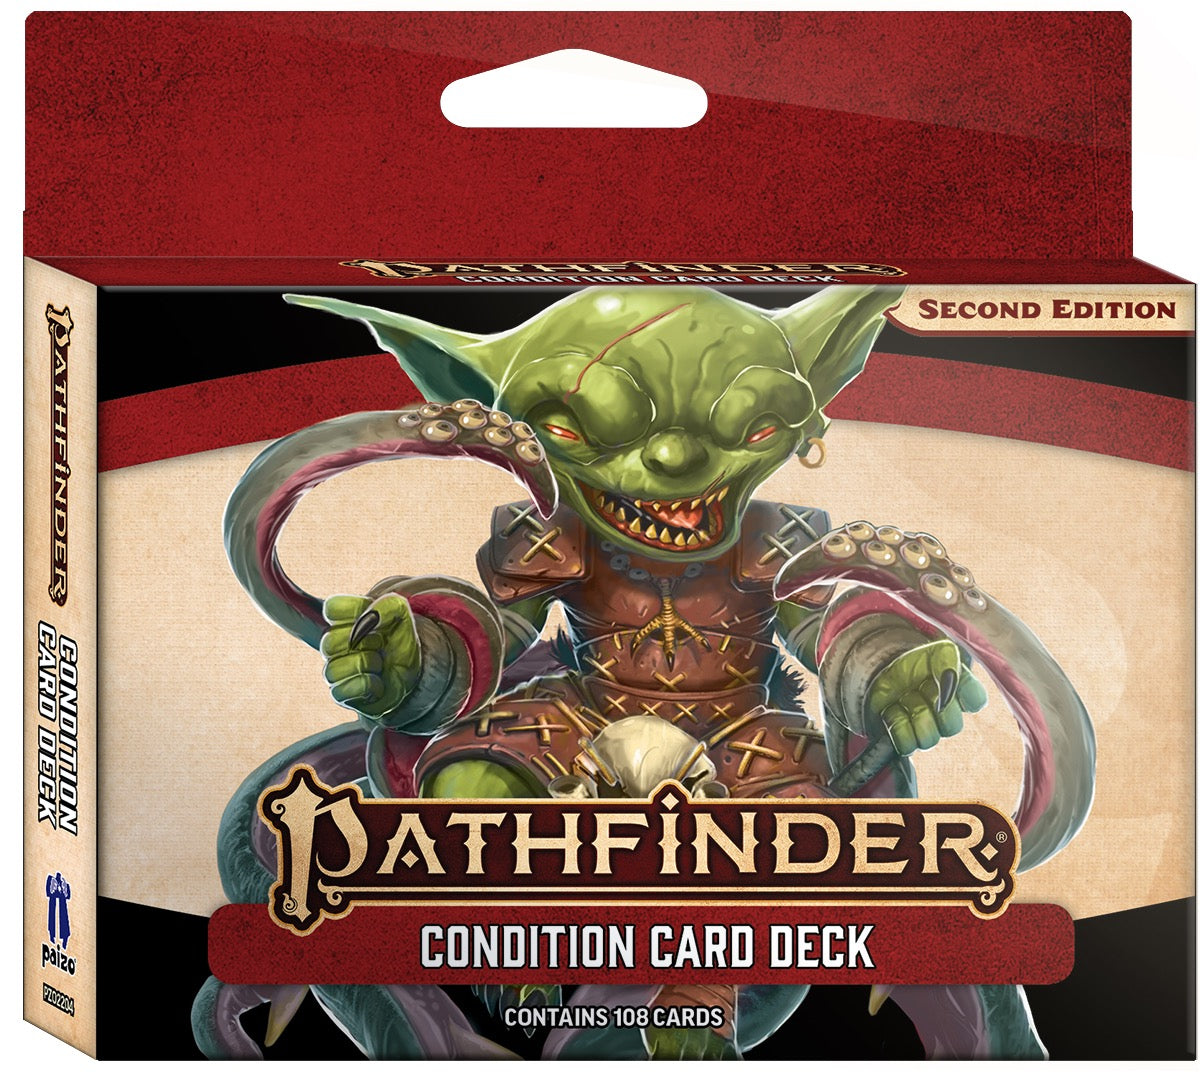 Pathfinder Condition Card Deck | Davis Cards & Games